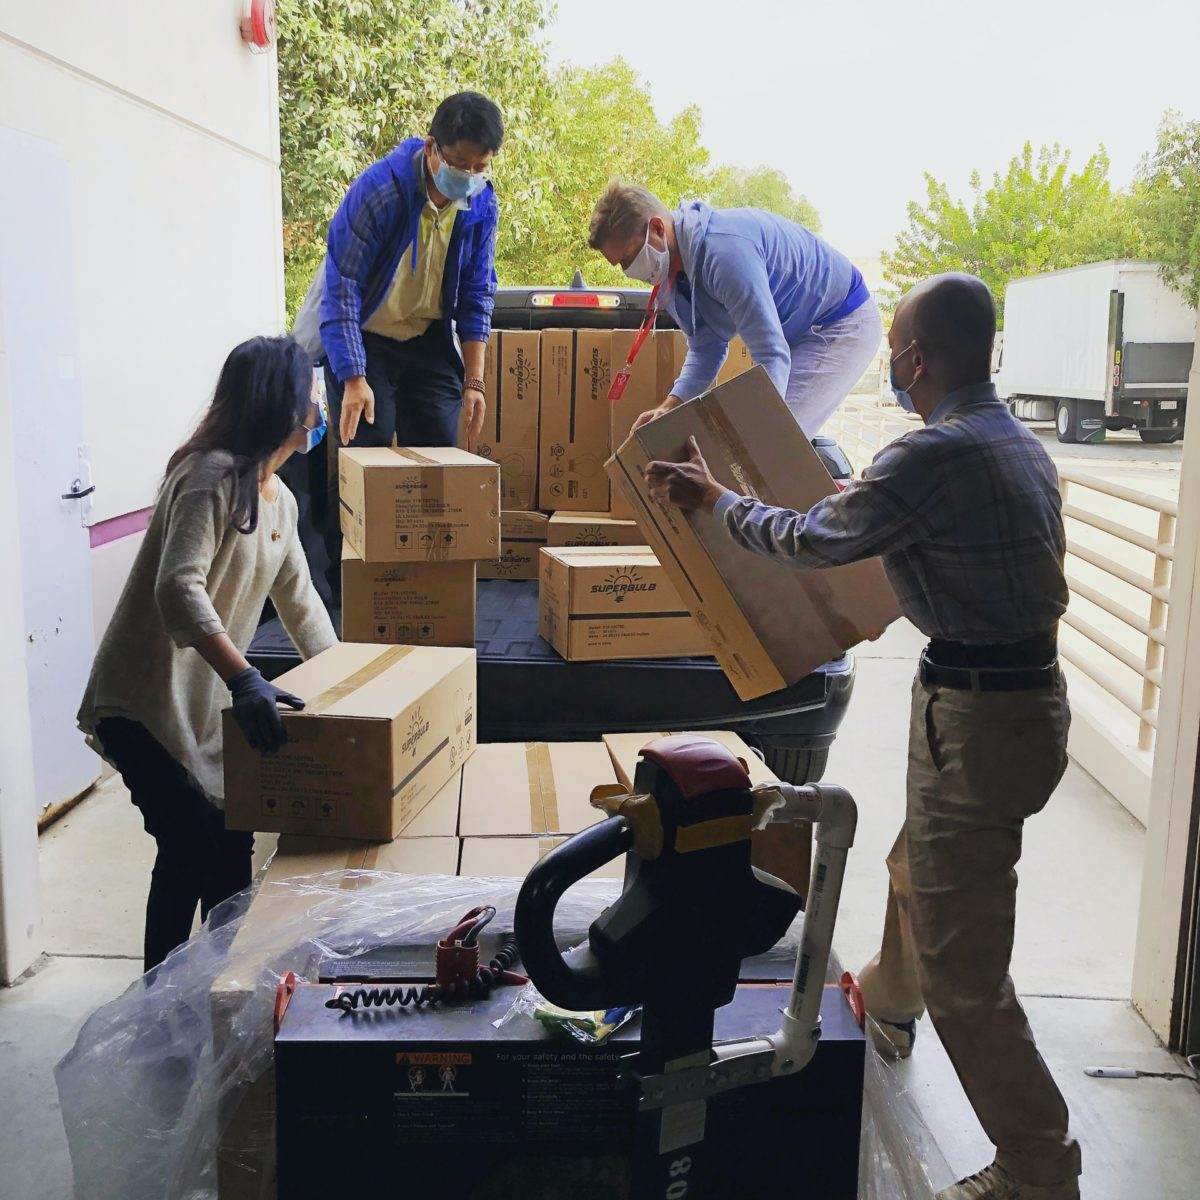 A group of volunteers loading boxes into a pickup truck.